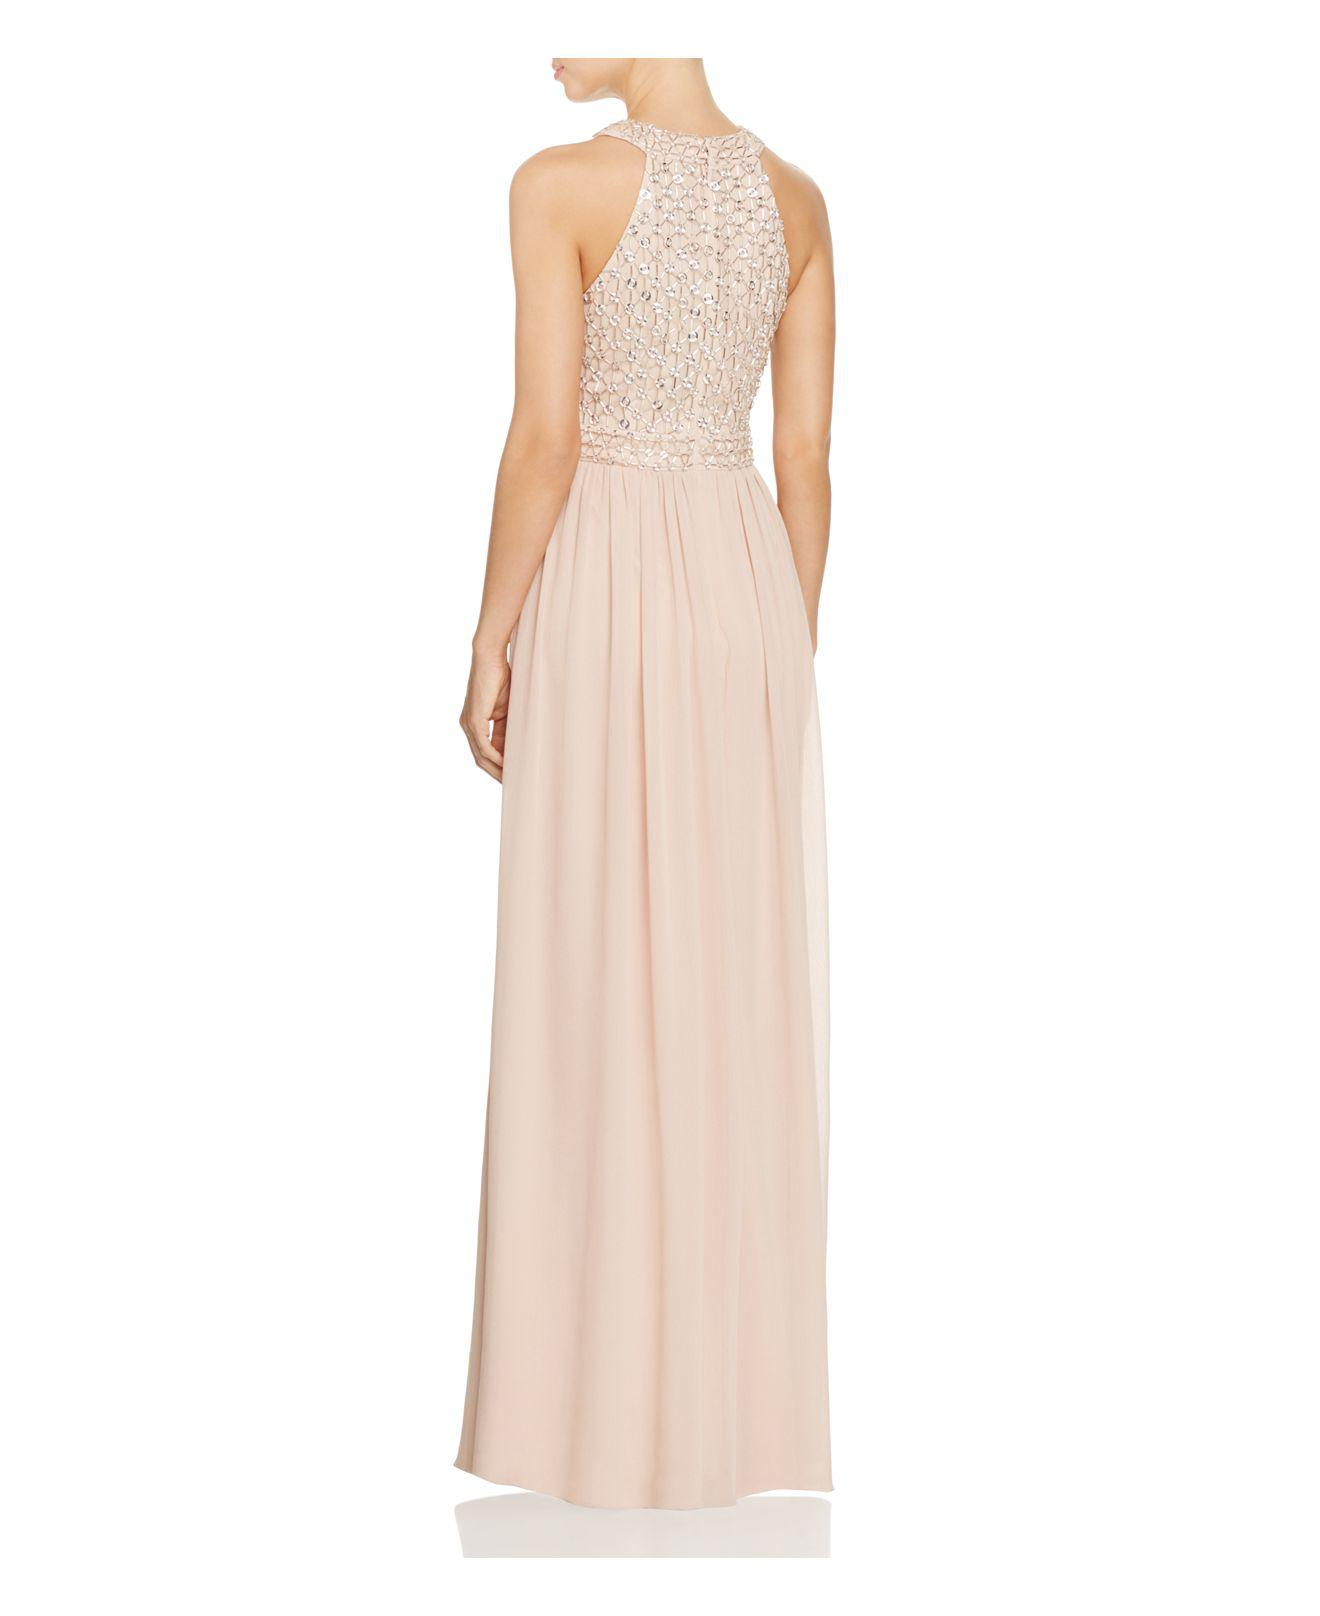 Lyst - Js Collections Beaded Illusion Gown in Pink